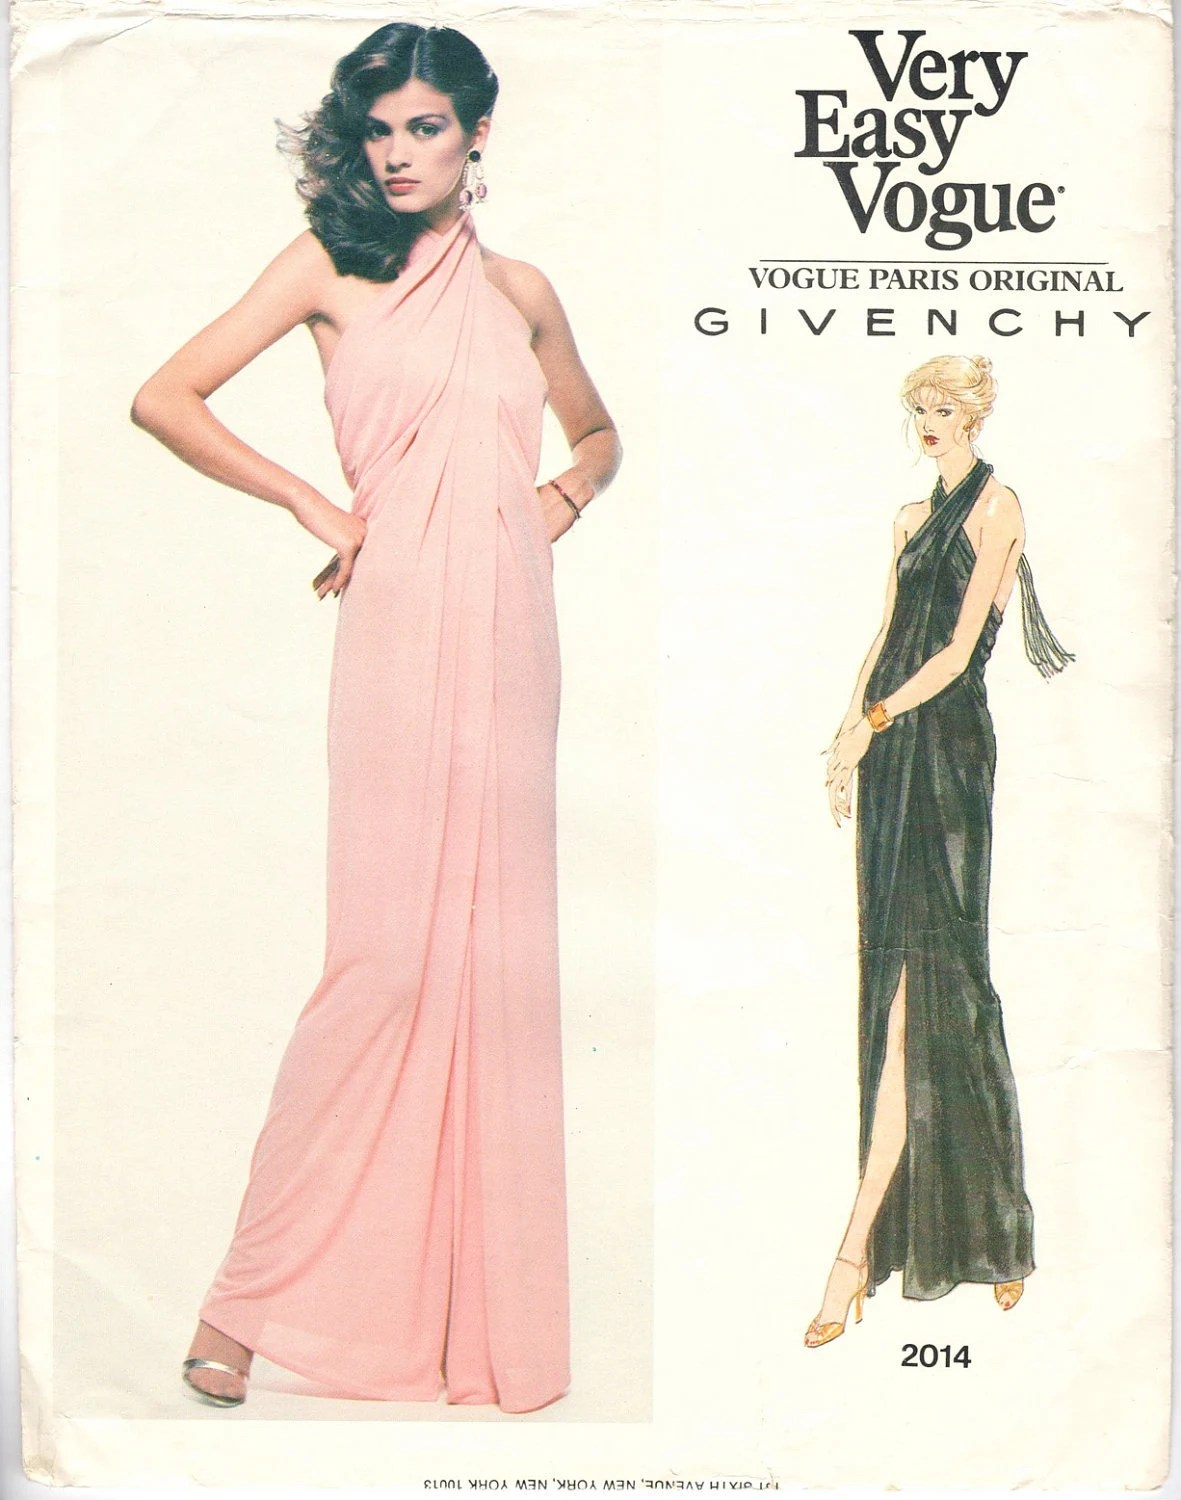 Gia Carangi models Vogue 2014, a pink evening dress by Givenchy